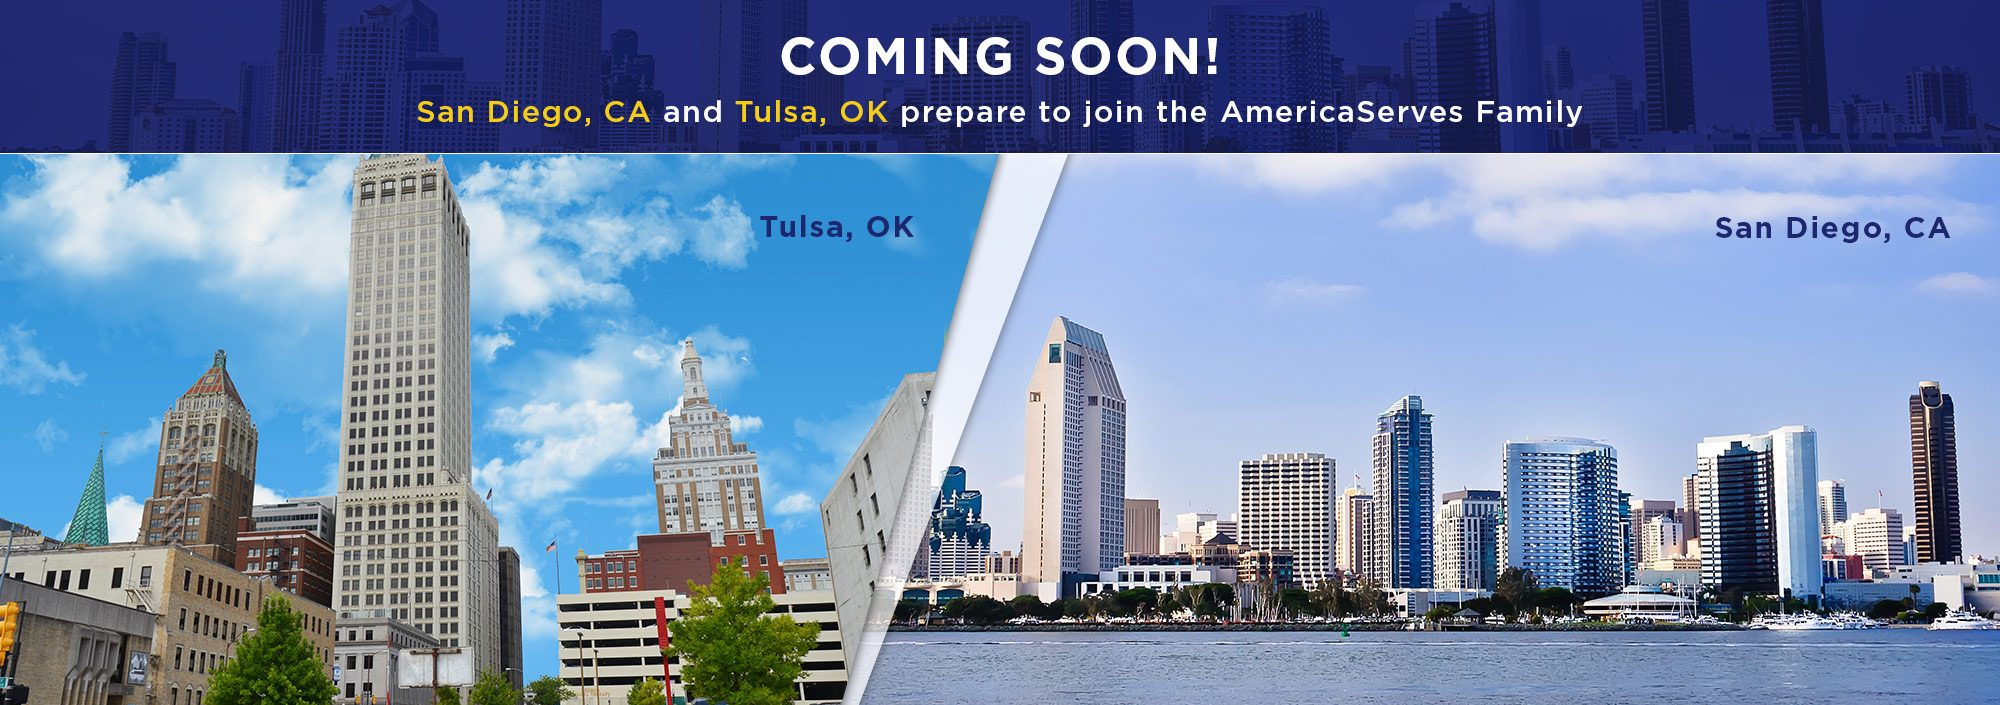 San Diego and Tulsa join the AmericaServes family